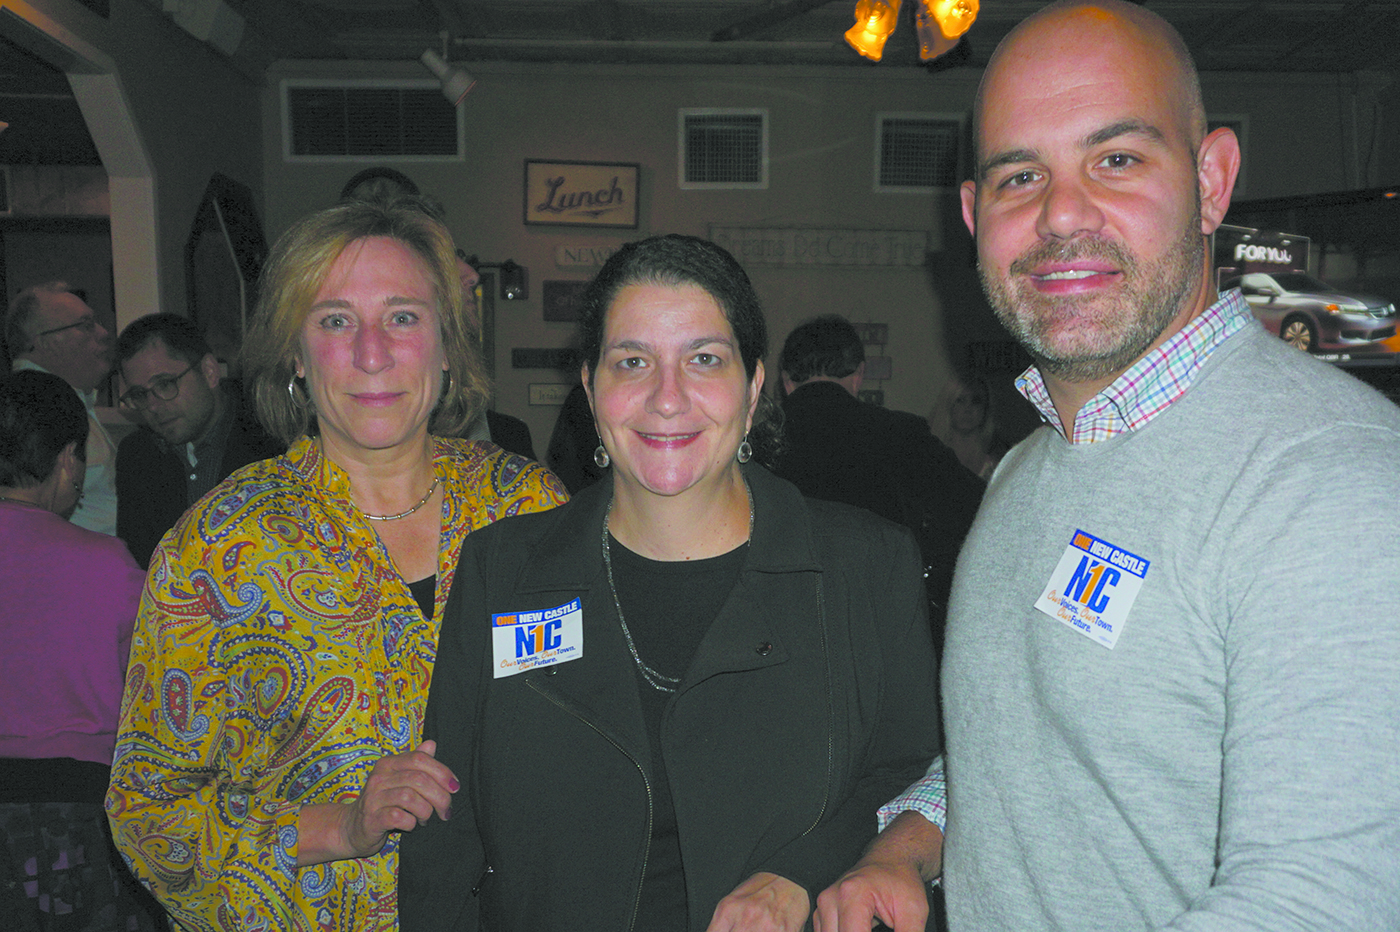 At a fundraiser inside the Quaker Hill Tavern: One New Castle candidates (from left) Hala Makowska, Victoria Alzapiedi and Jeremy M. Saland